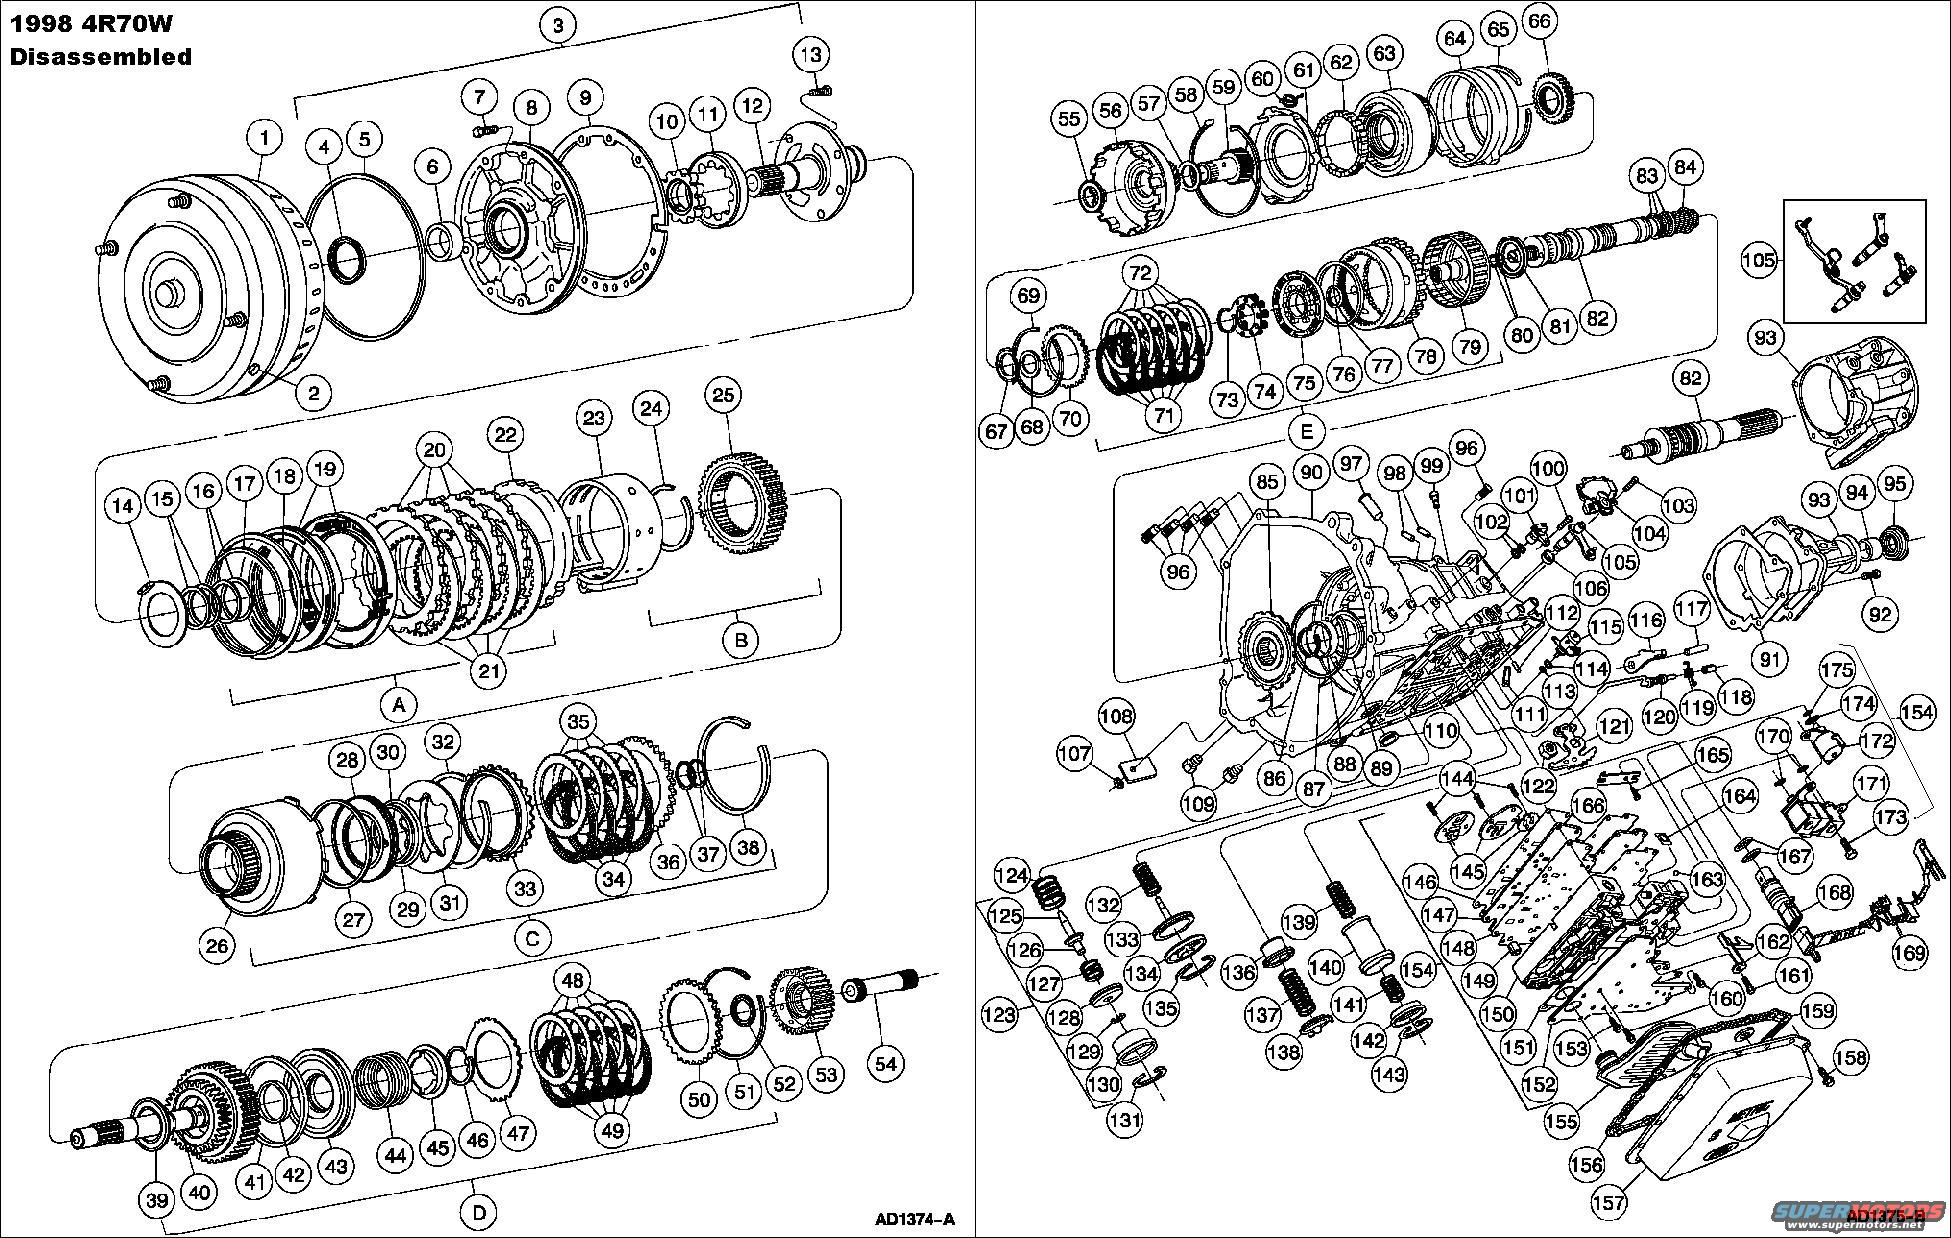 Nissan Altima Wiring Diagram And Body Electrical System